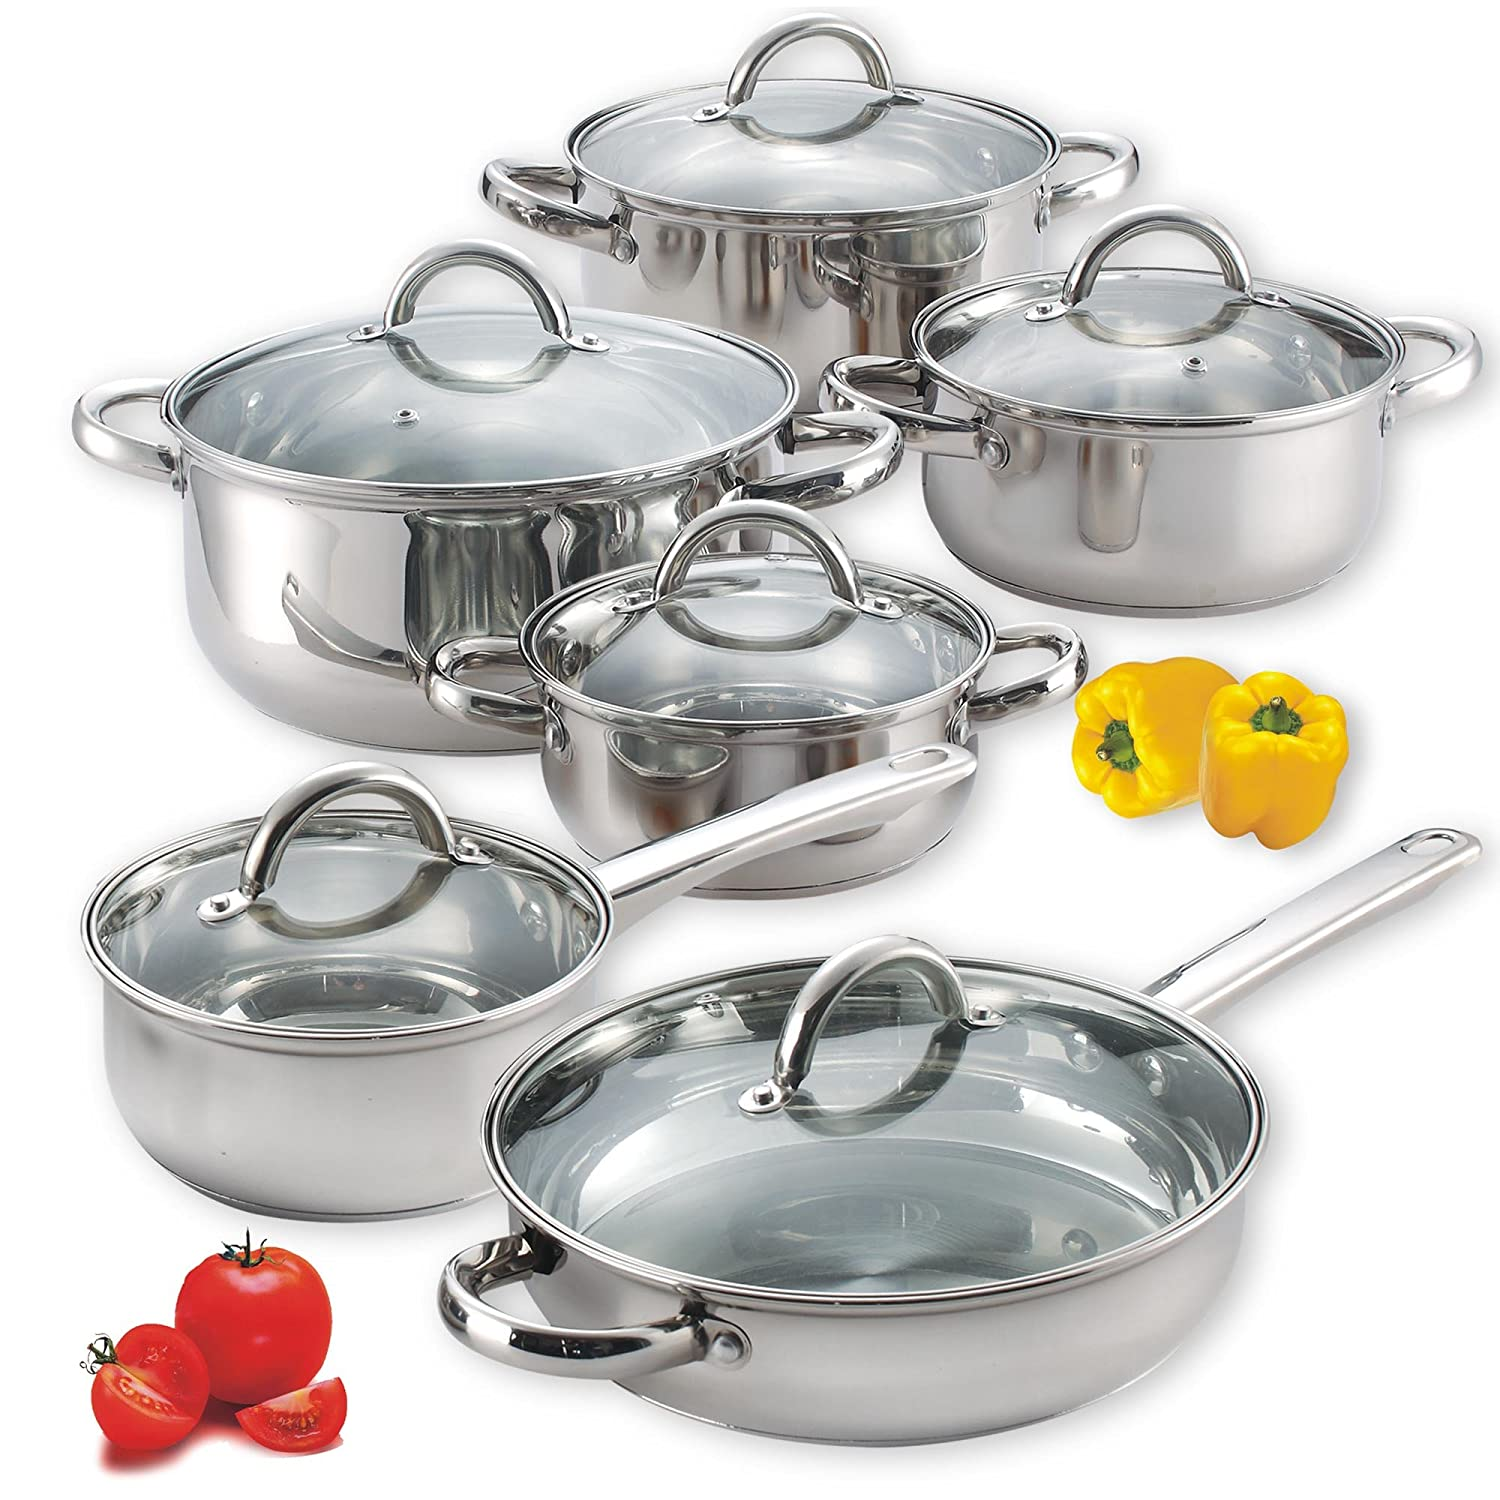 kitchen cookware sets wood set new 6 piece pots and pans home cooking